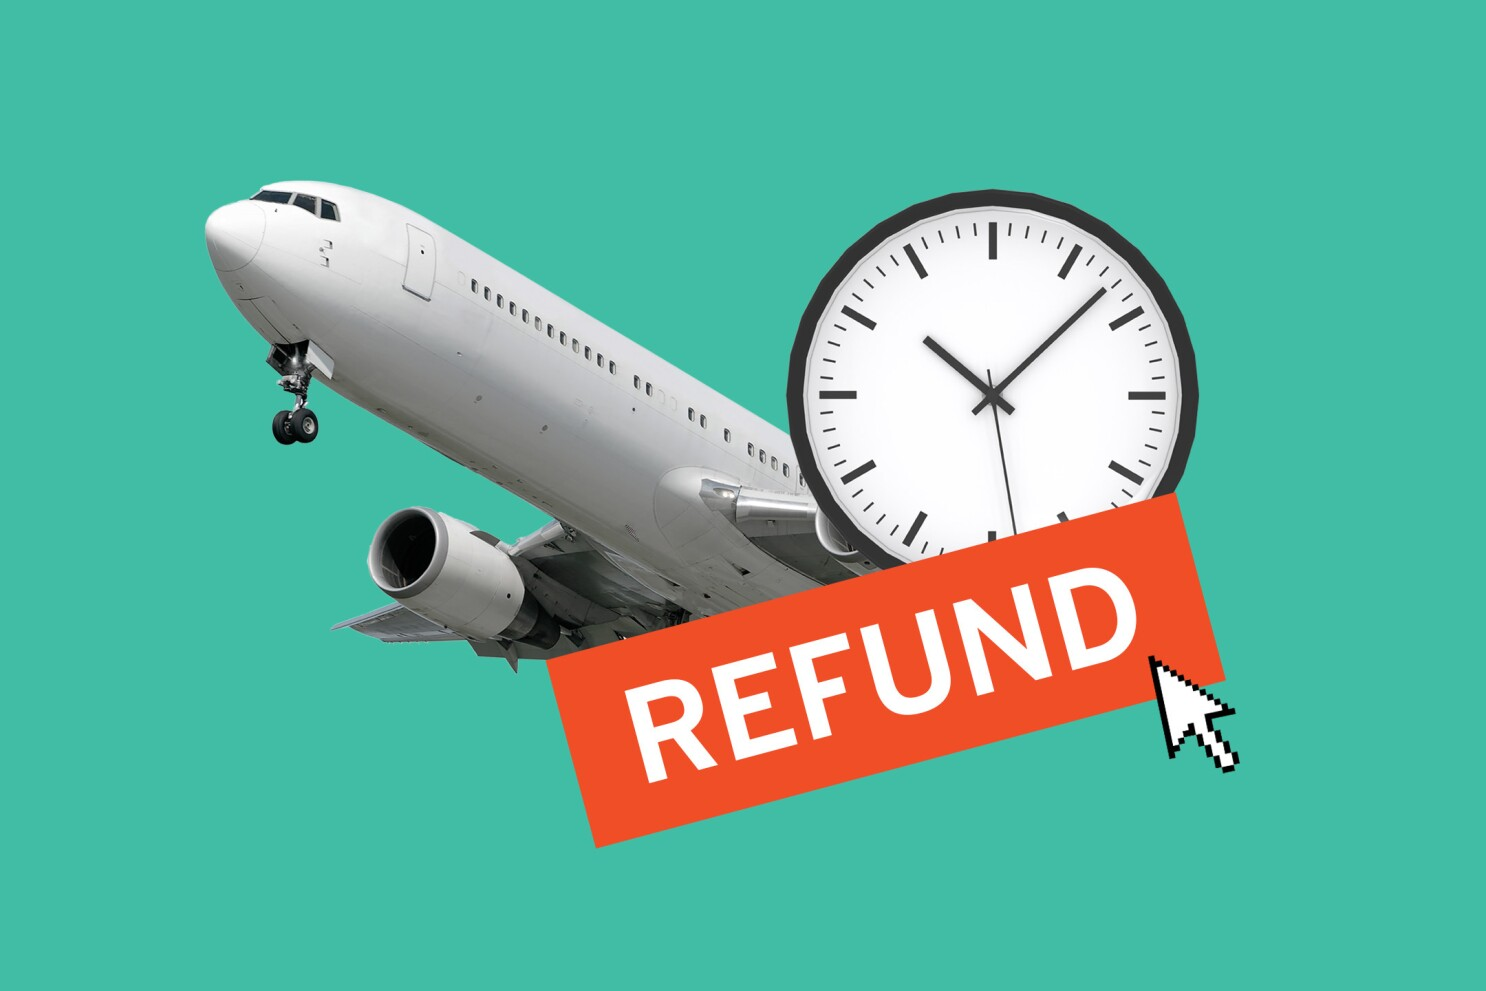 How one man grappled with COVID-19 airline refunds - Los Angeles Times